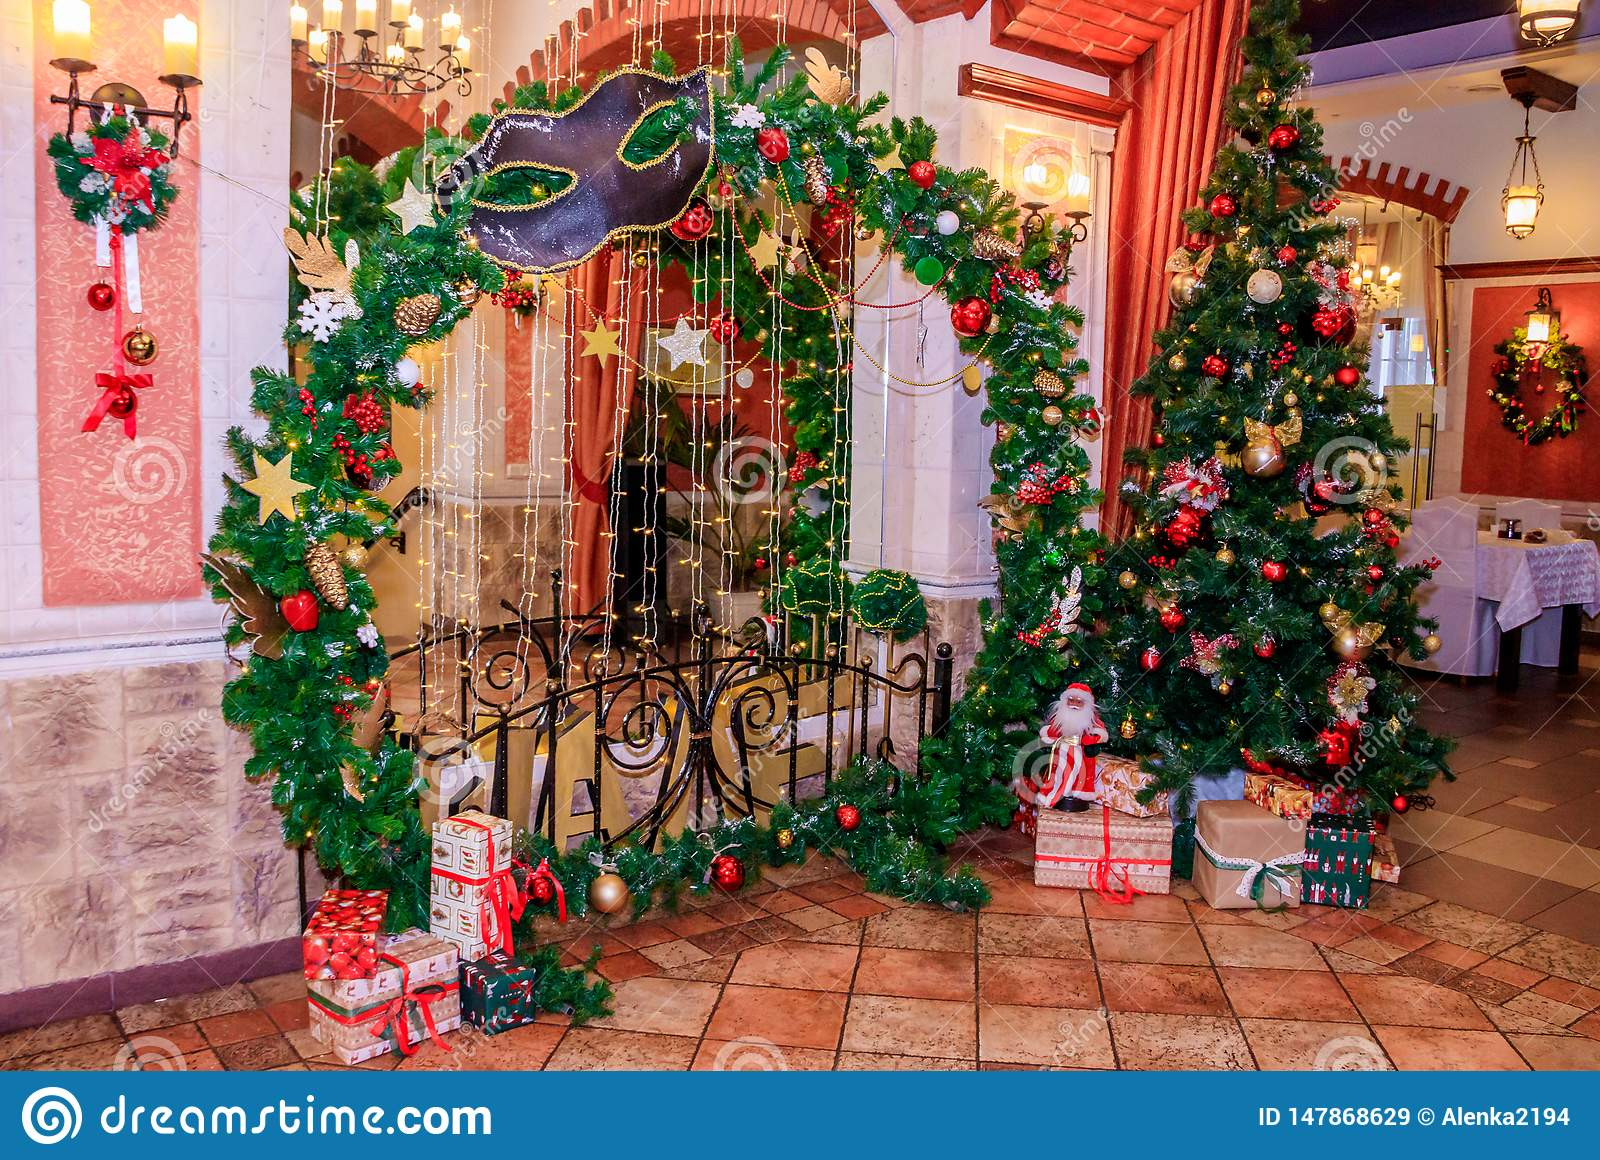 Christmas Decoration Of The Hall In The Restaurant Holiday In The Restaurant New Year S Decor Red And Green Decorations The Stock Image Image Of Champagne Decorations 147868629